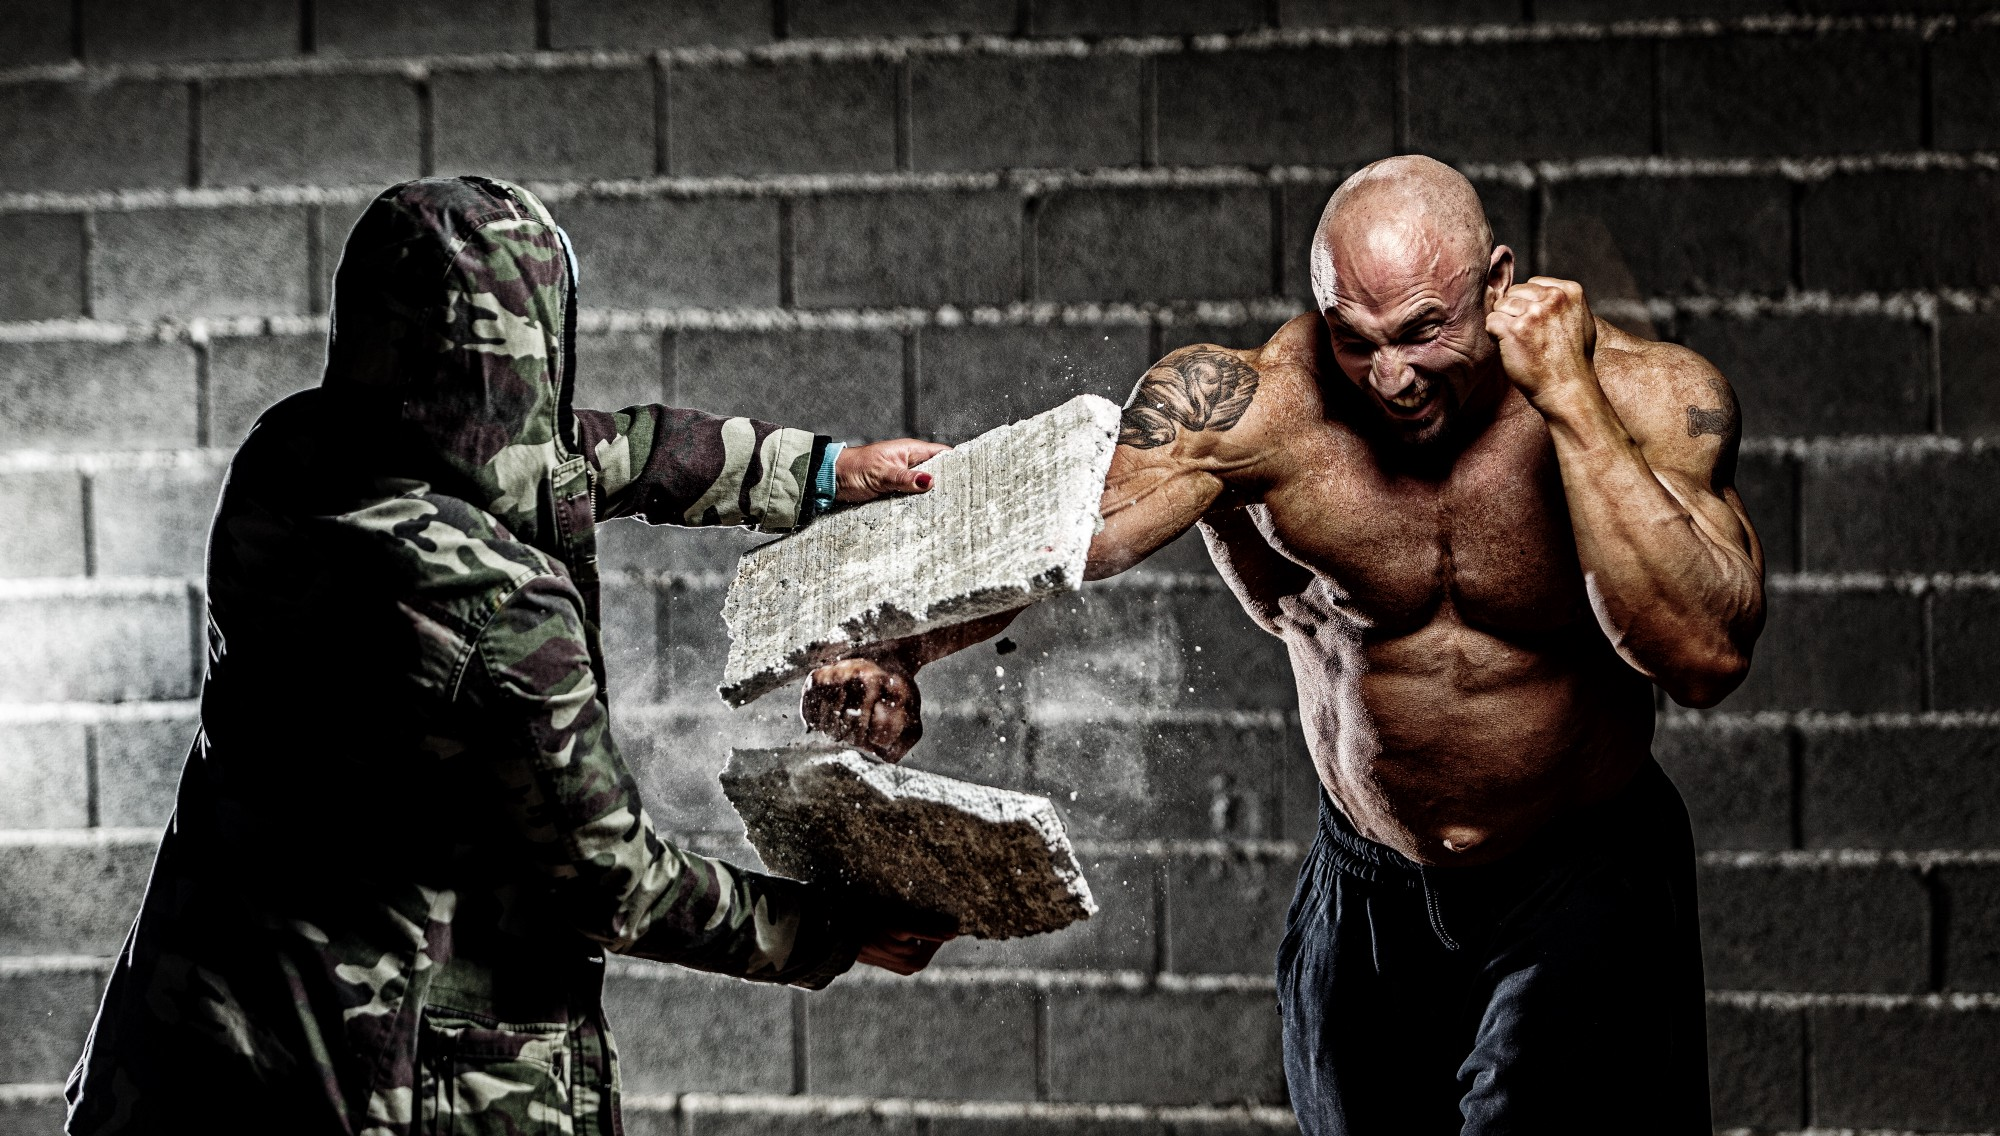 Hi there! BichoDoMato here. This picture displays a very muscular man (no shirt!—he looks like a fighter) breaking a long white brick in two, with fists! Another person is holting the brick being broken. That person is wearing a military suit.